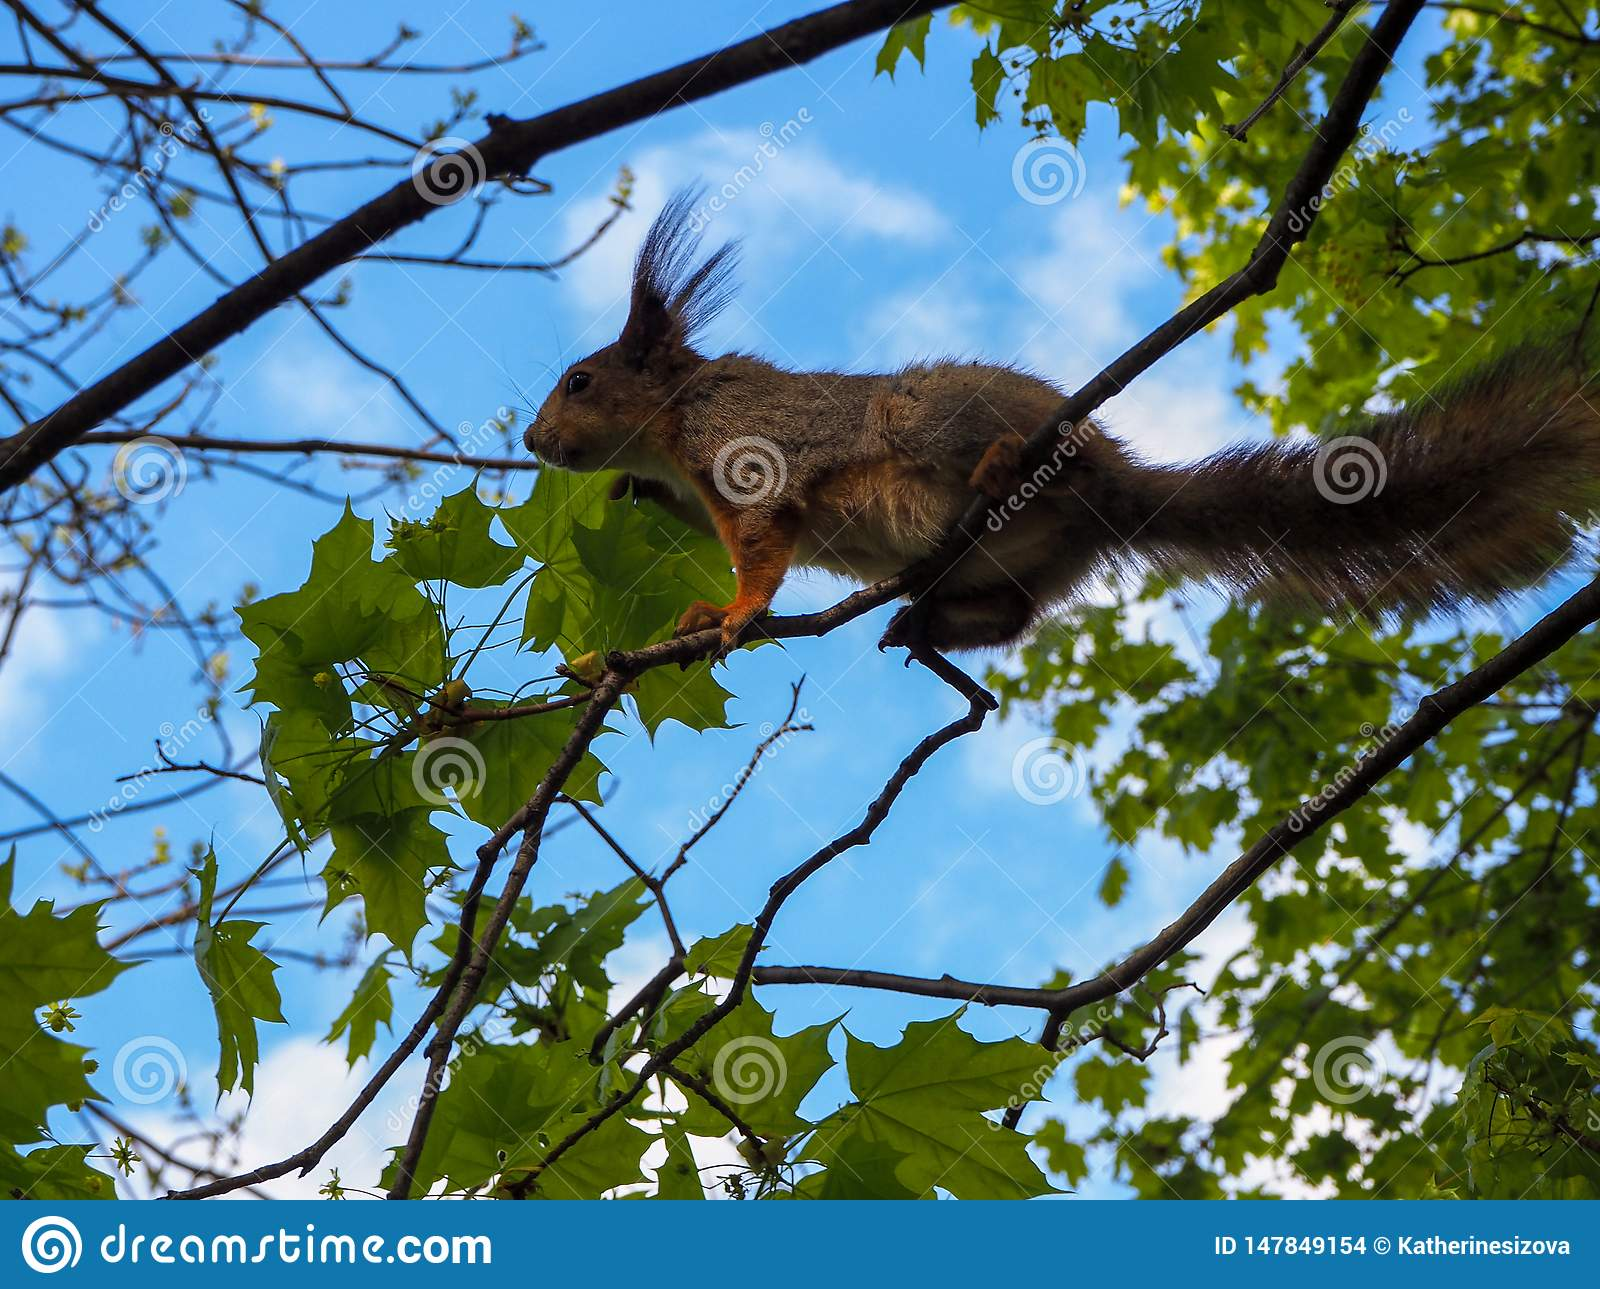 A squirrel is climbing on the tree branches